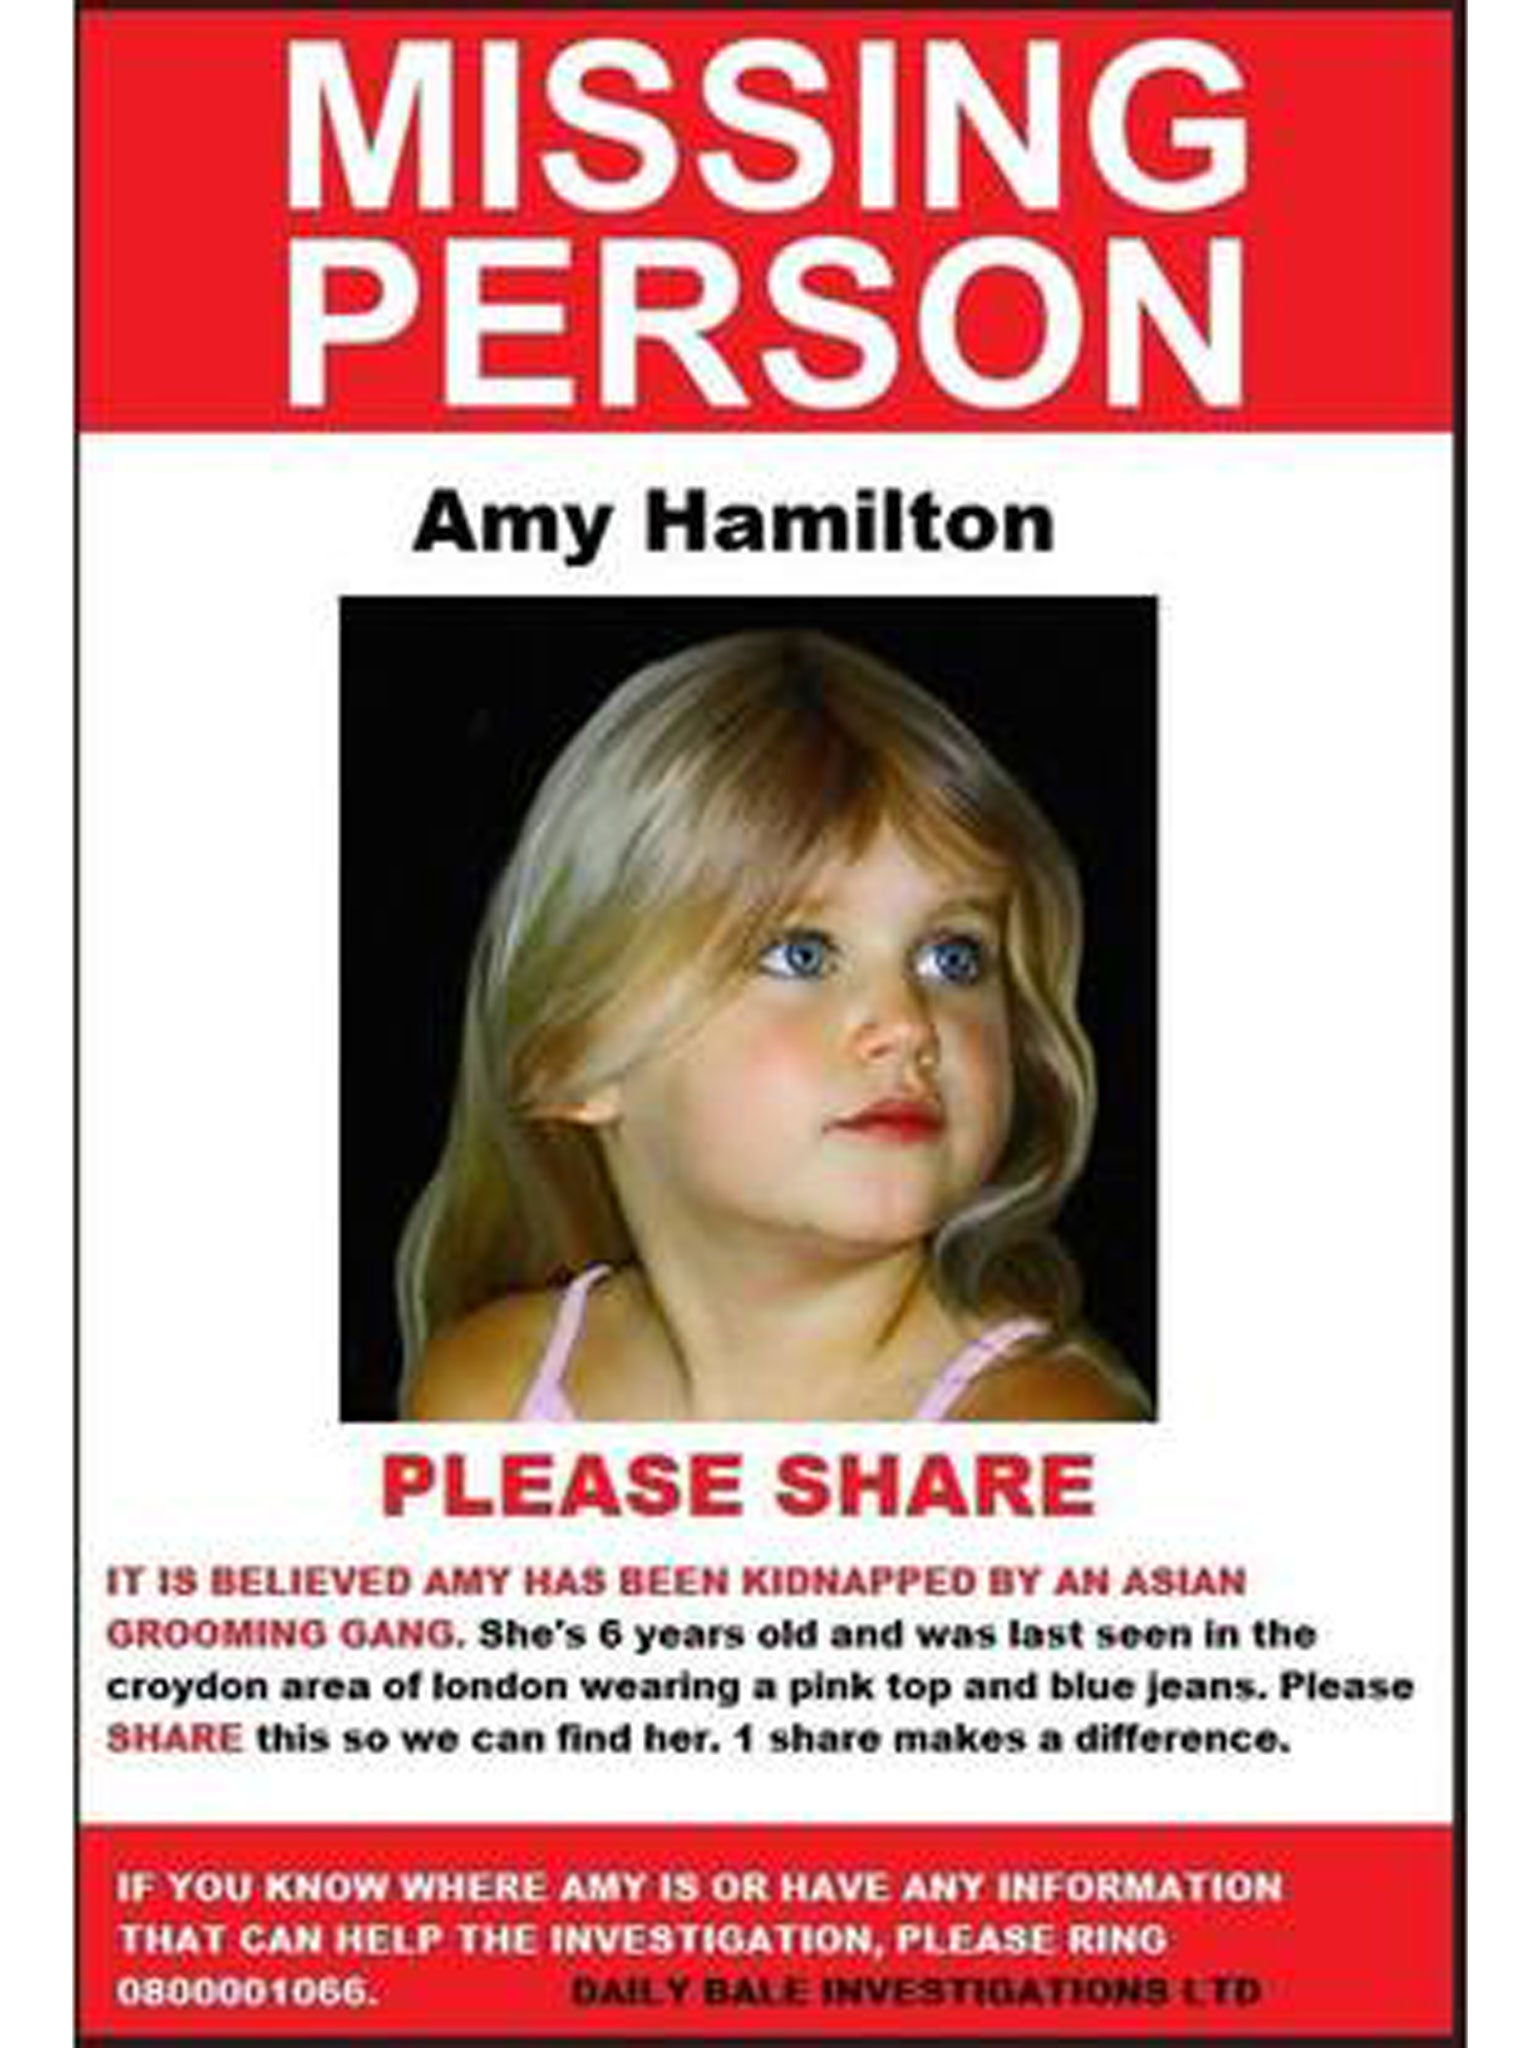 Lucy Day A2 Media Coursework November 2015 – Missing Person Flyer